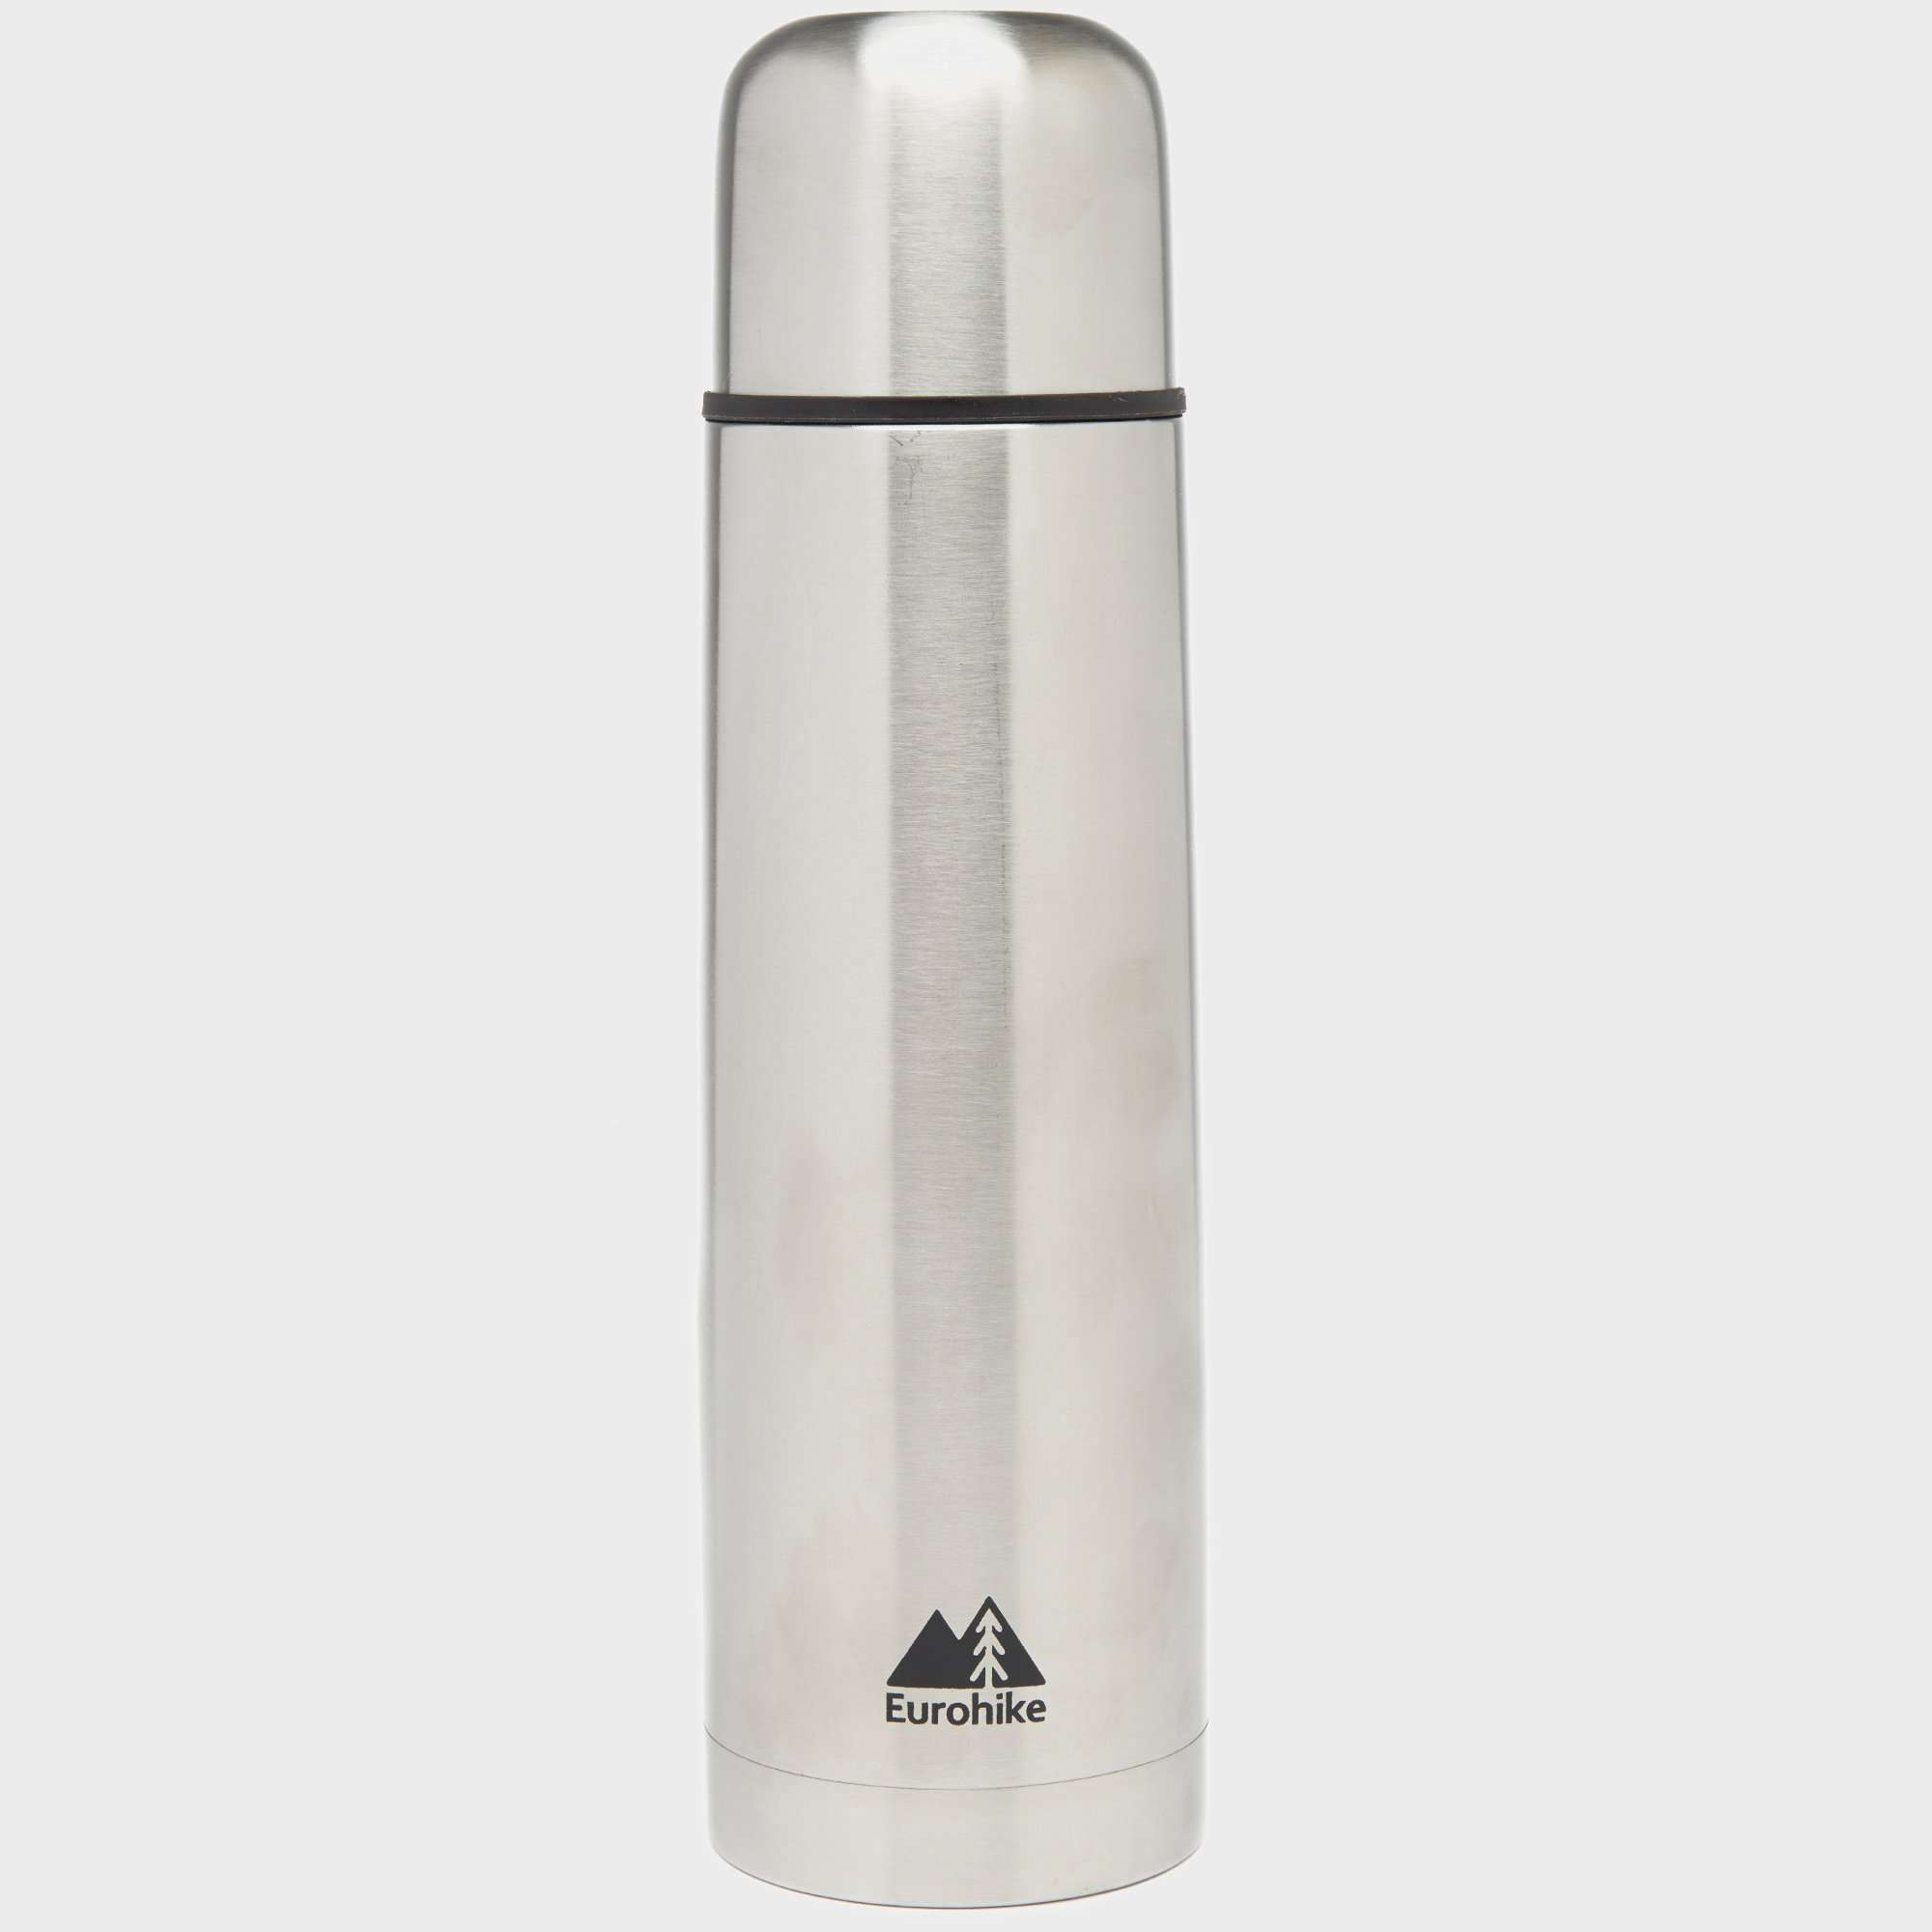 EUROHIKE Stainless Steel Flask 750ml